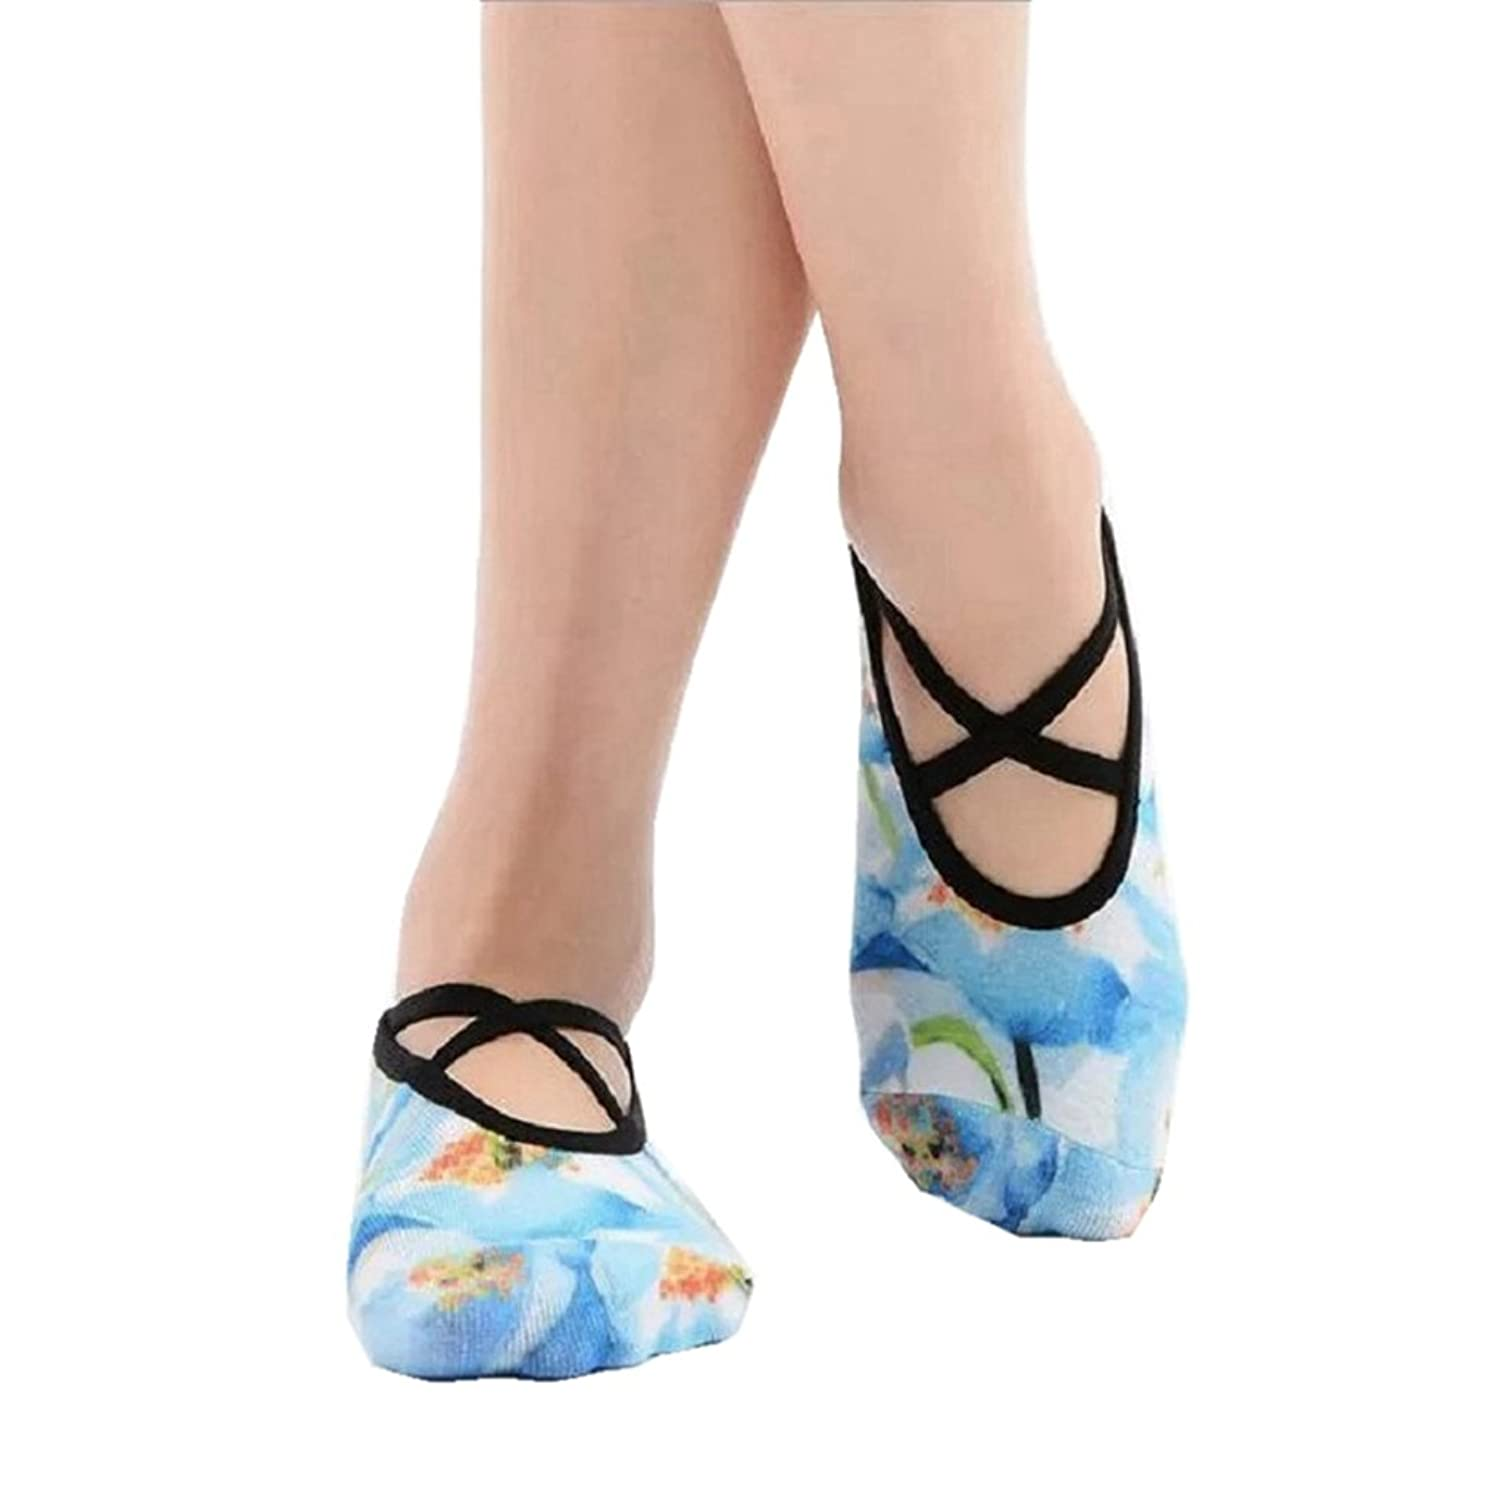 Amazon.com: PinkBTFY Women Cotton Yoga Socks 3D Printed Ankle Socks Non-Slip Grip Dance Flower Pilates Sox Blue: Clothing